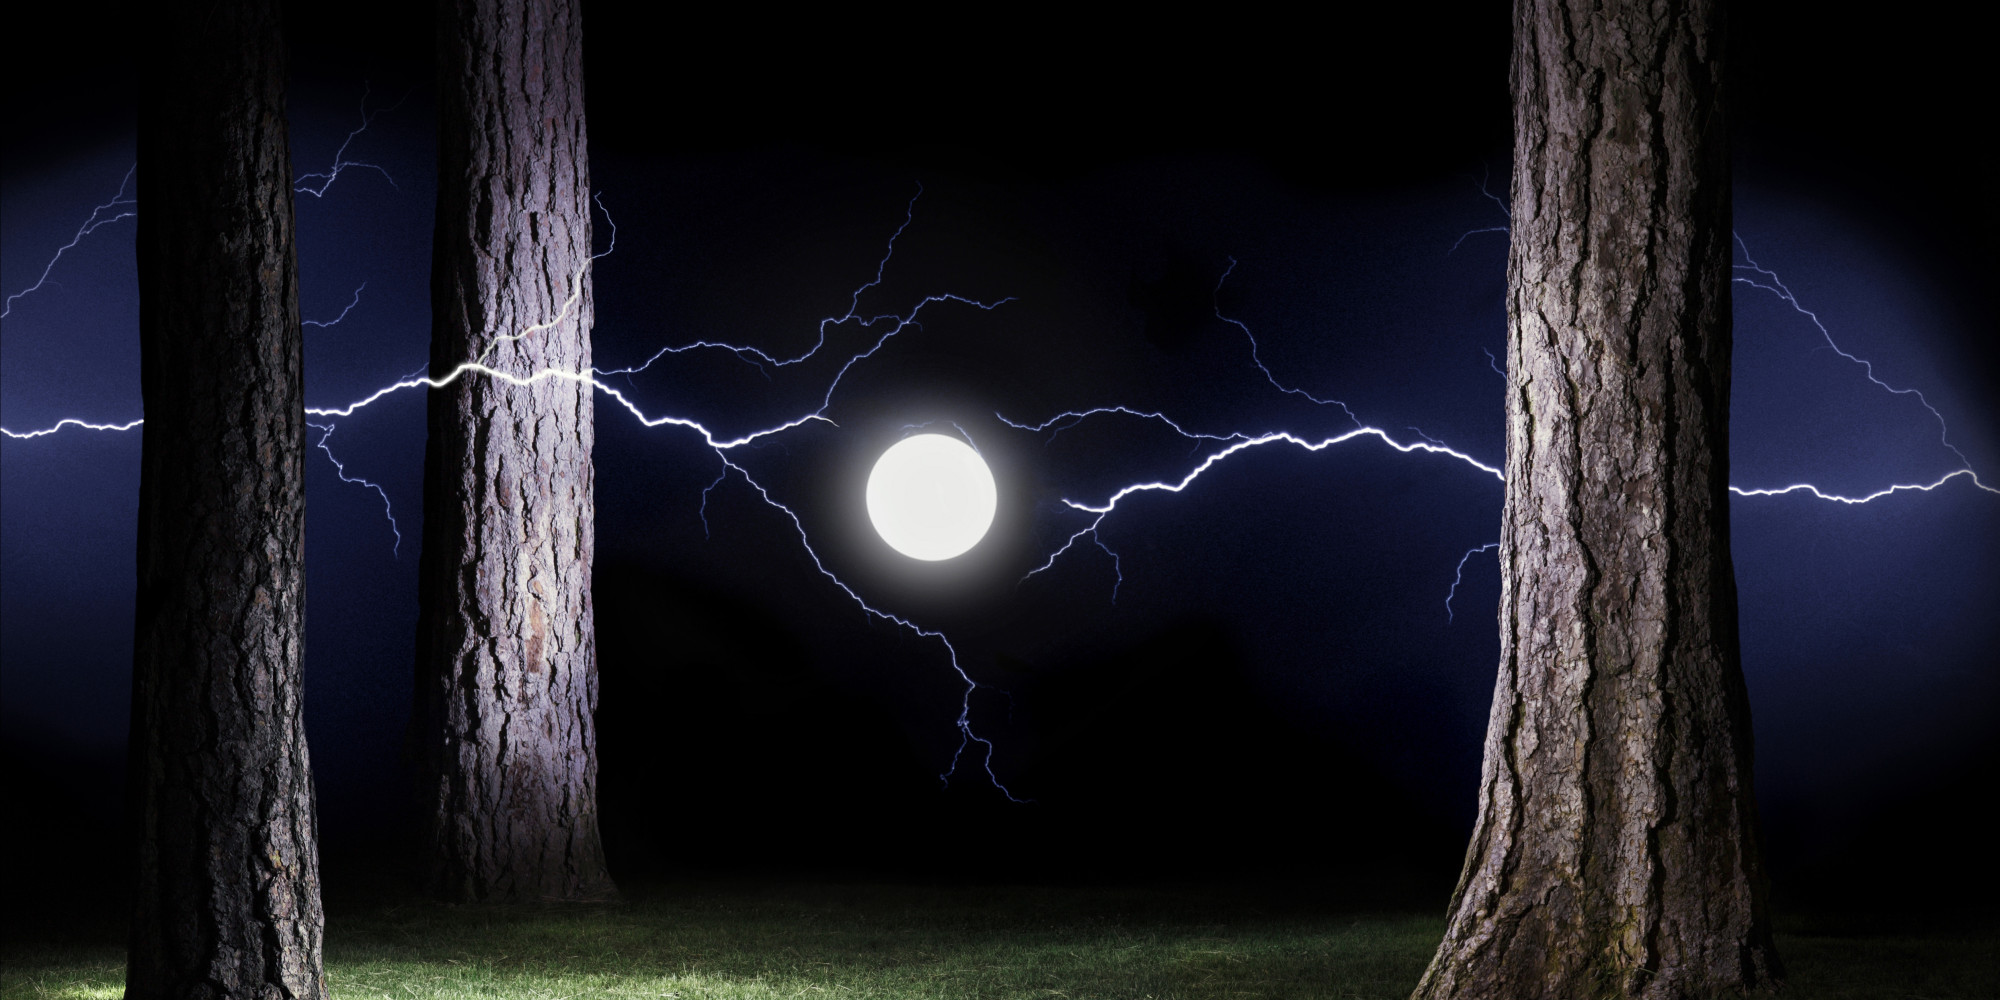 natural ball lightning recorded by scientists for first time ever